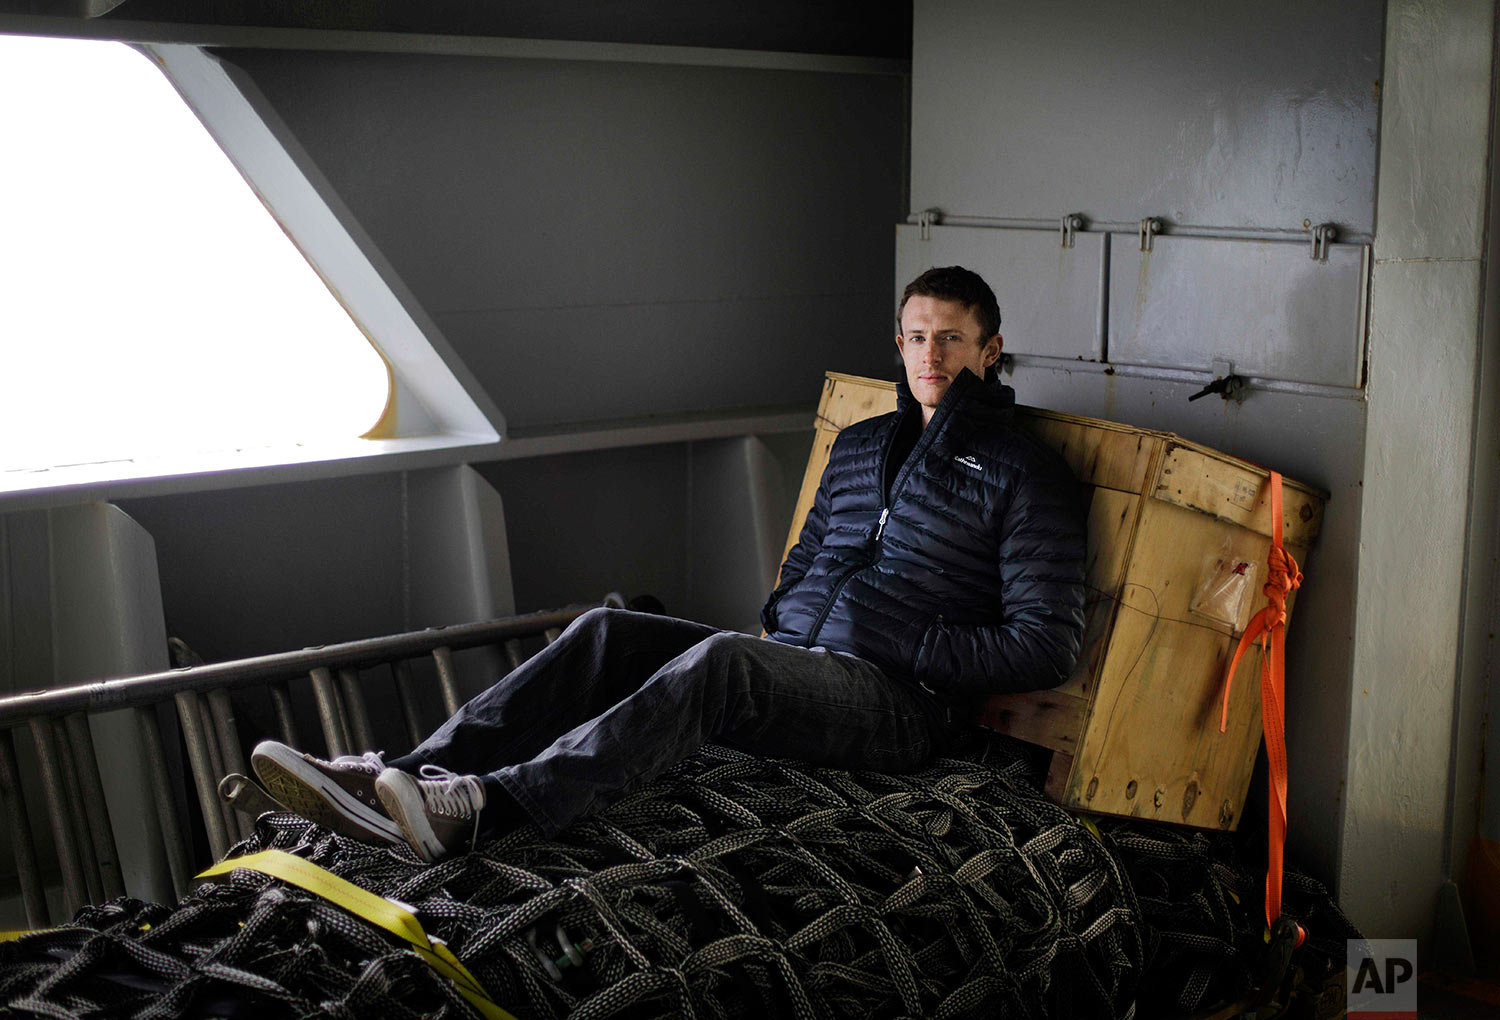 "Polar maritime lawyer Scott Joblin, 30, sits for a portrait aboard the Finnish icebreaker MSV Nordica as it sails north in the Bering Sea toward the Arctic, Wednesday, July 12, 2017. ""It's a chance to ground my research in real world context,"" said Joblin who is pursuing his doctorate in international law at Australian National University. ""I don't think the size or the scale [of the Arctic] is anything you can comprehend. The trip so far contextualizes how hard it is to get there,"" said Joblin of the roughly nine days the ship will take to reach the Arctic Circle from its departure in Vancouver. ""It's really the frontier as it exists."" (AP Photo/David Goldman)"